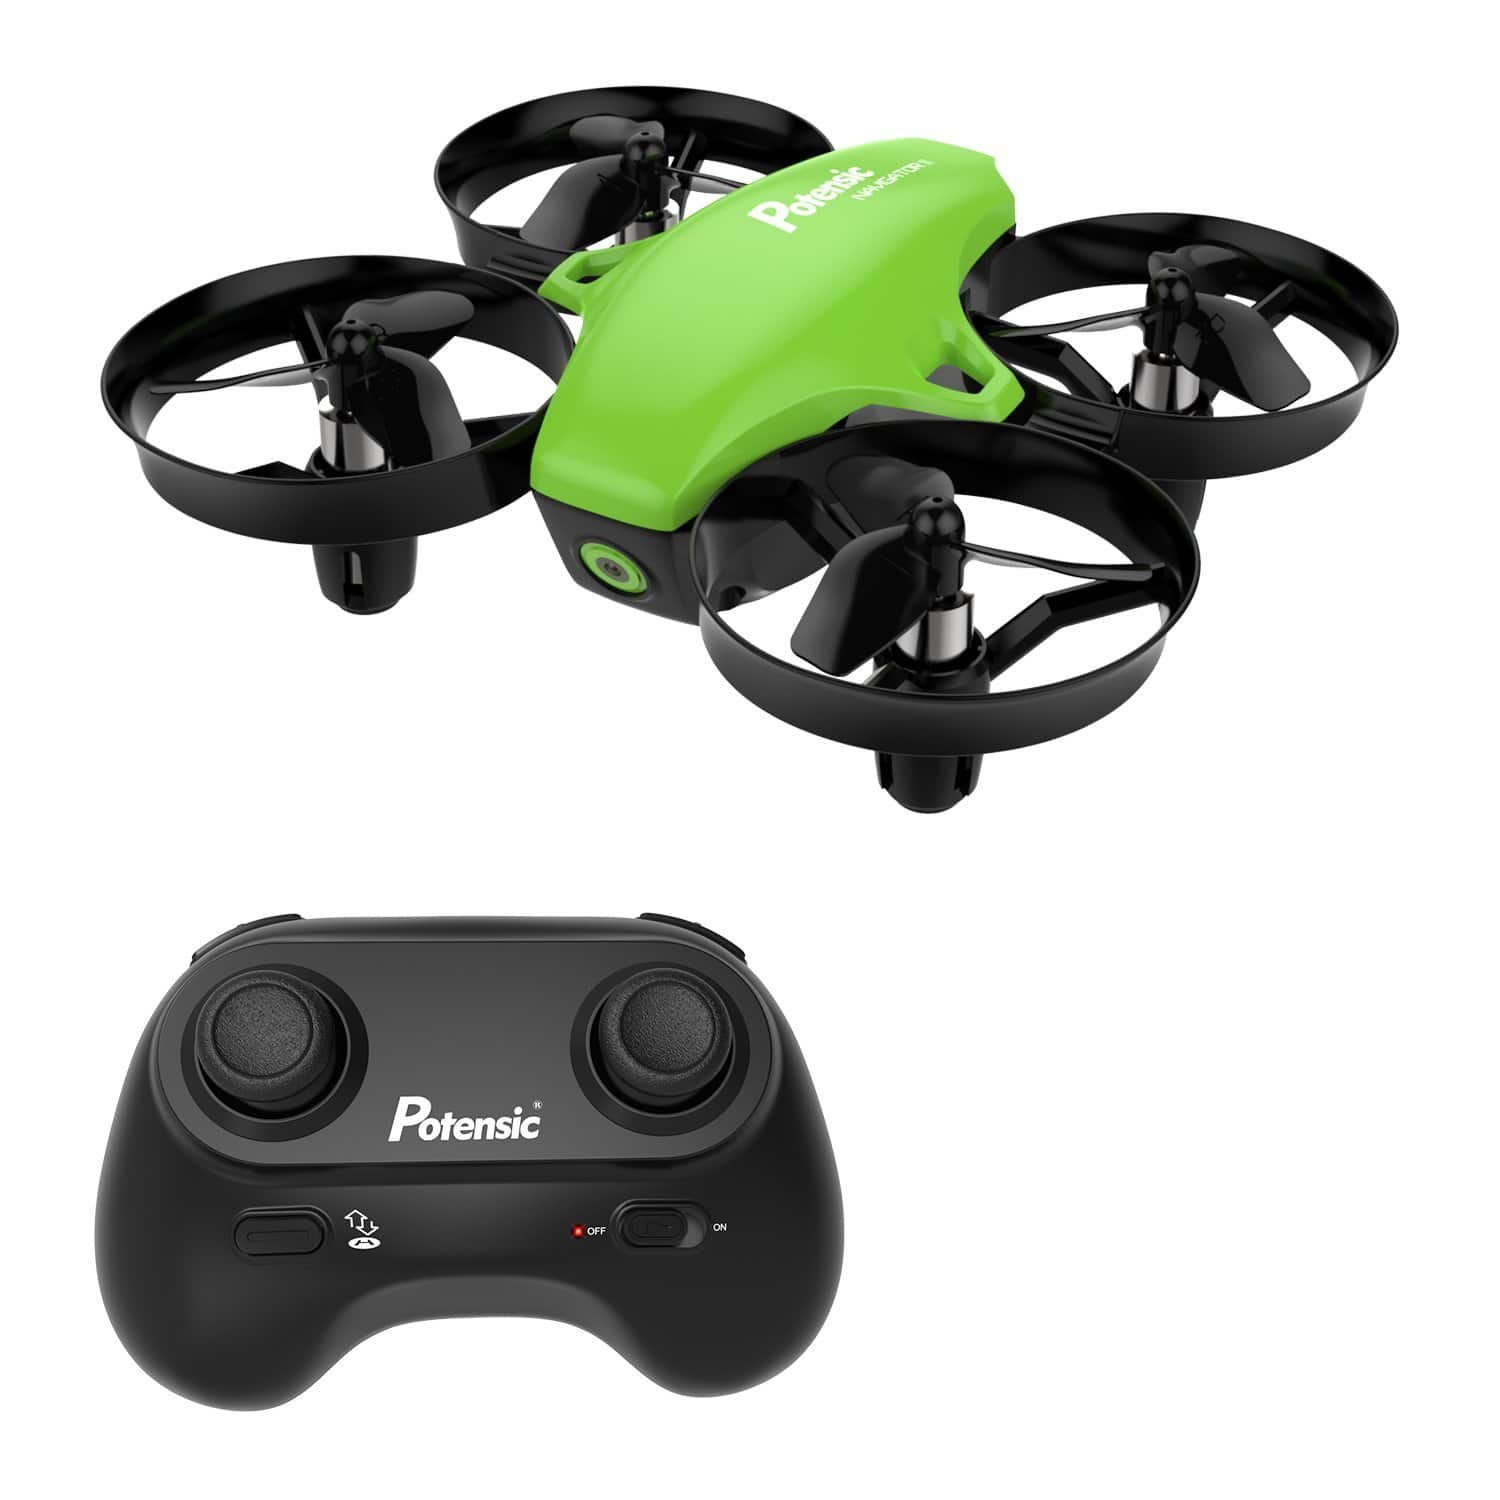 Mini Drone A20 RC Nano Quadcopter on Amazon $19.59 AC w/ Free Prime Shipping